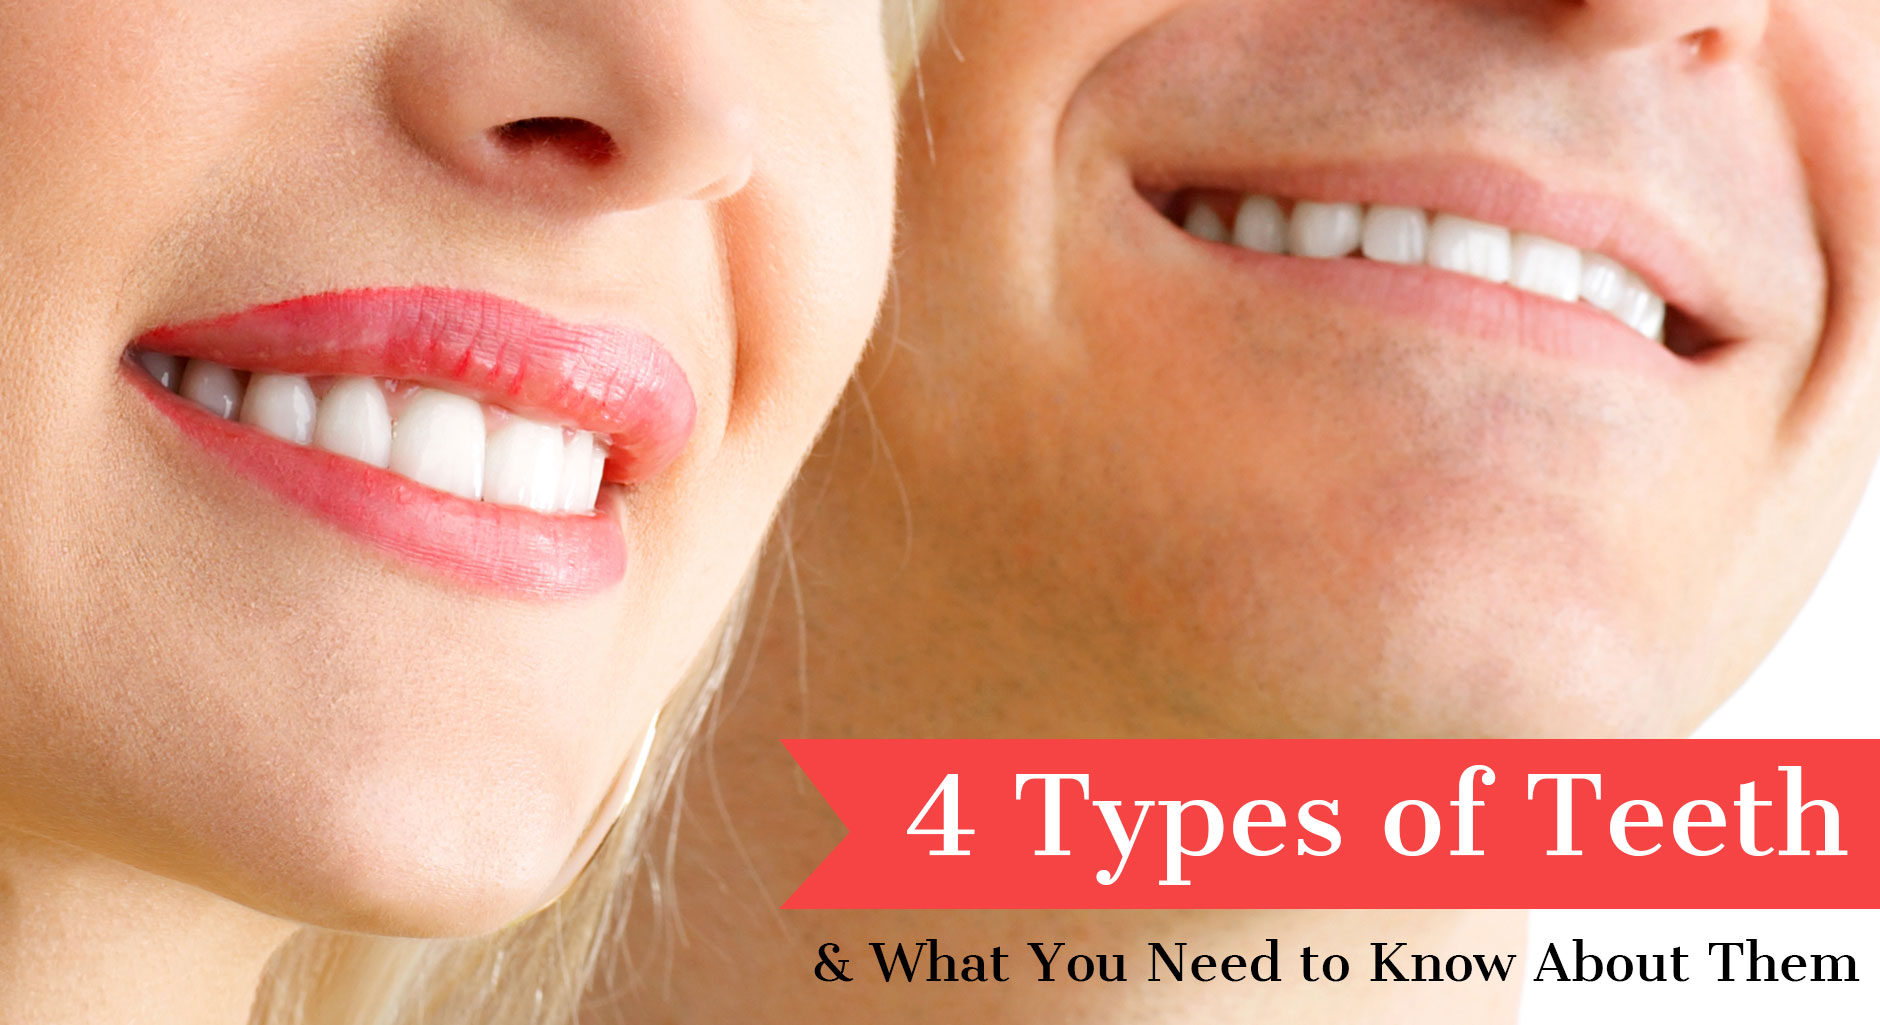 4 Types of Teeth & What You Need to Know